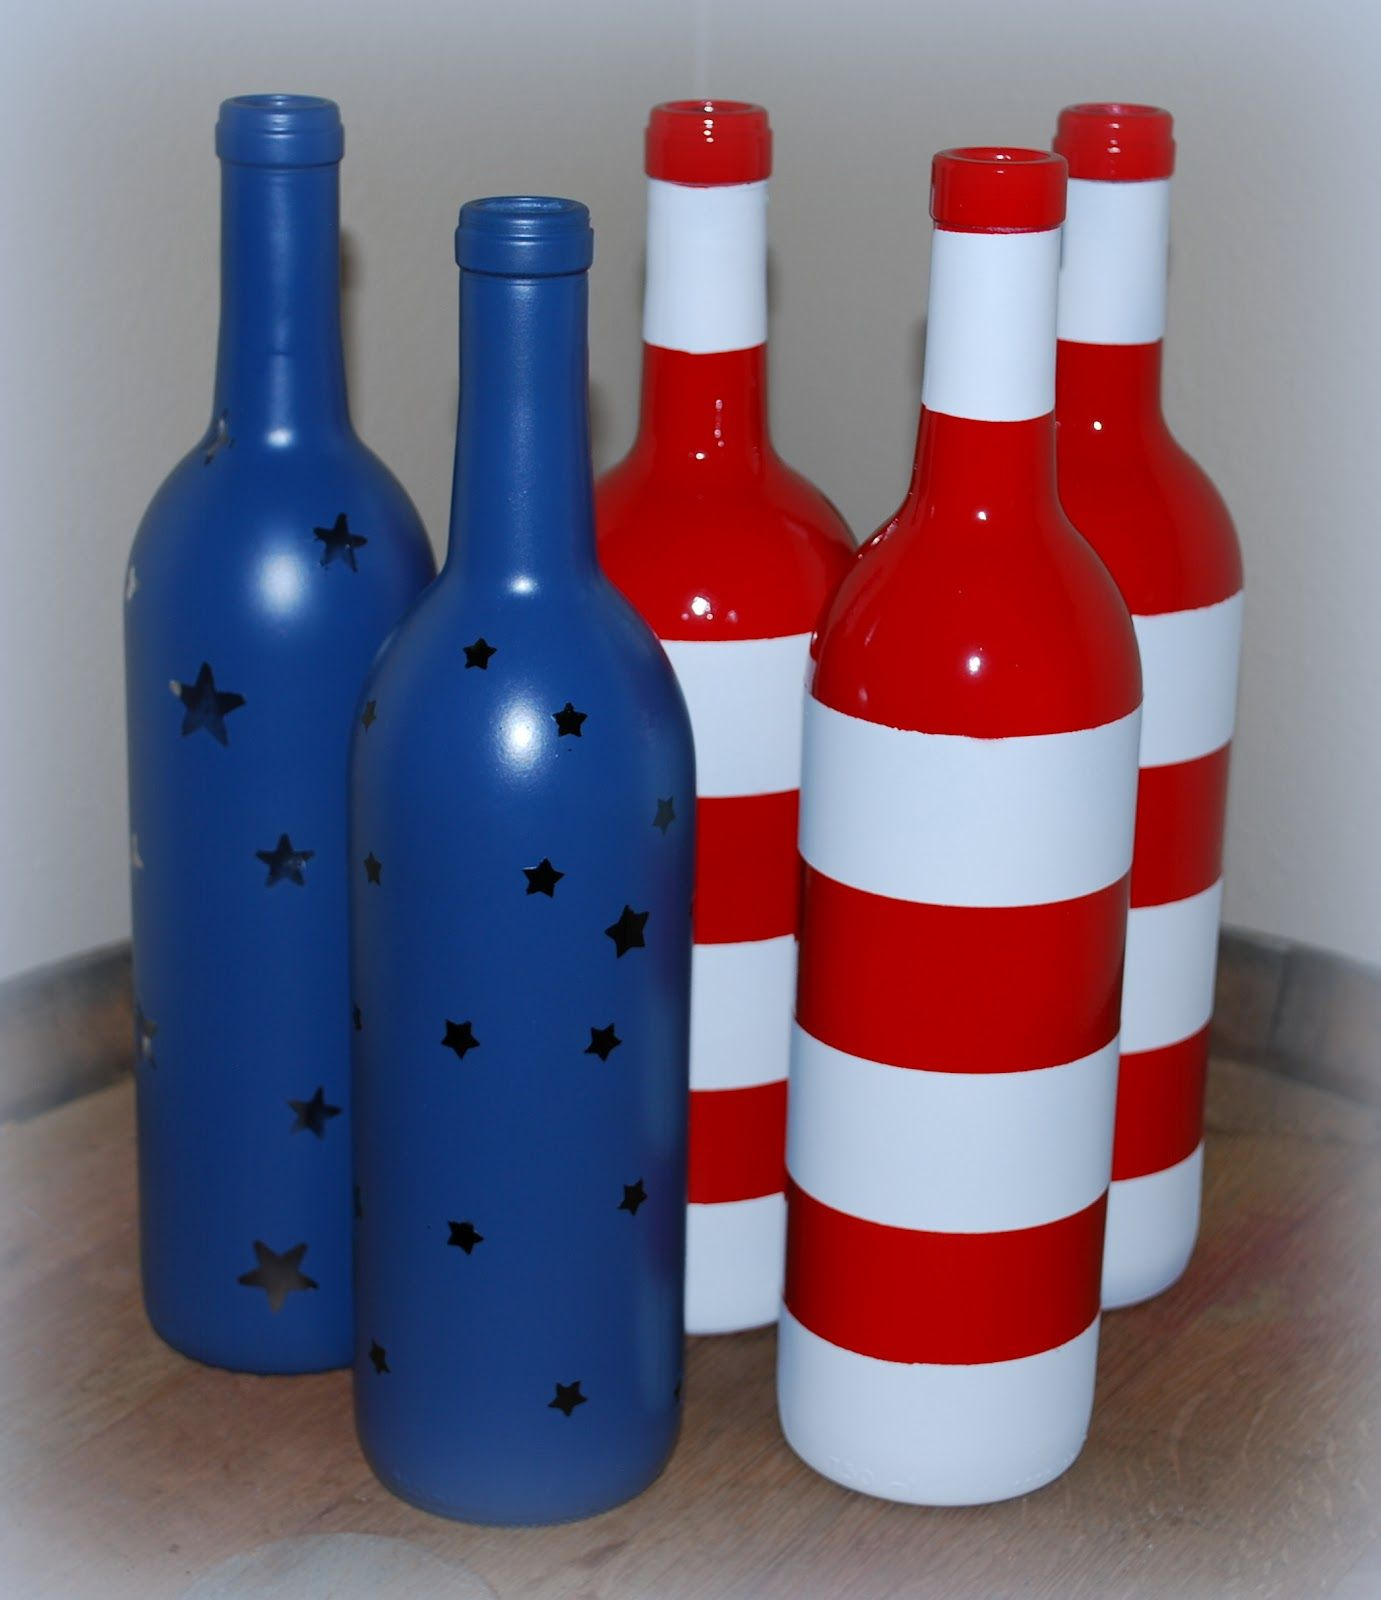 Stars And Stripes Painted Glass Bottles Spray Painted Bottles Bottles Decoration